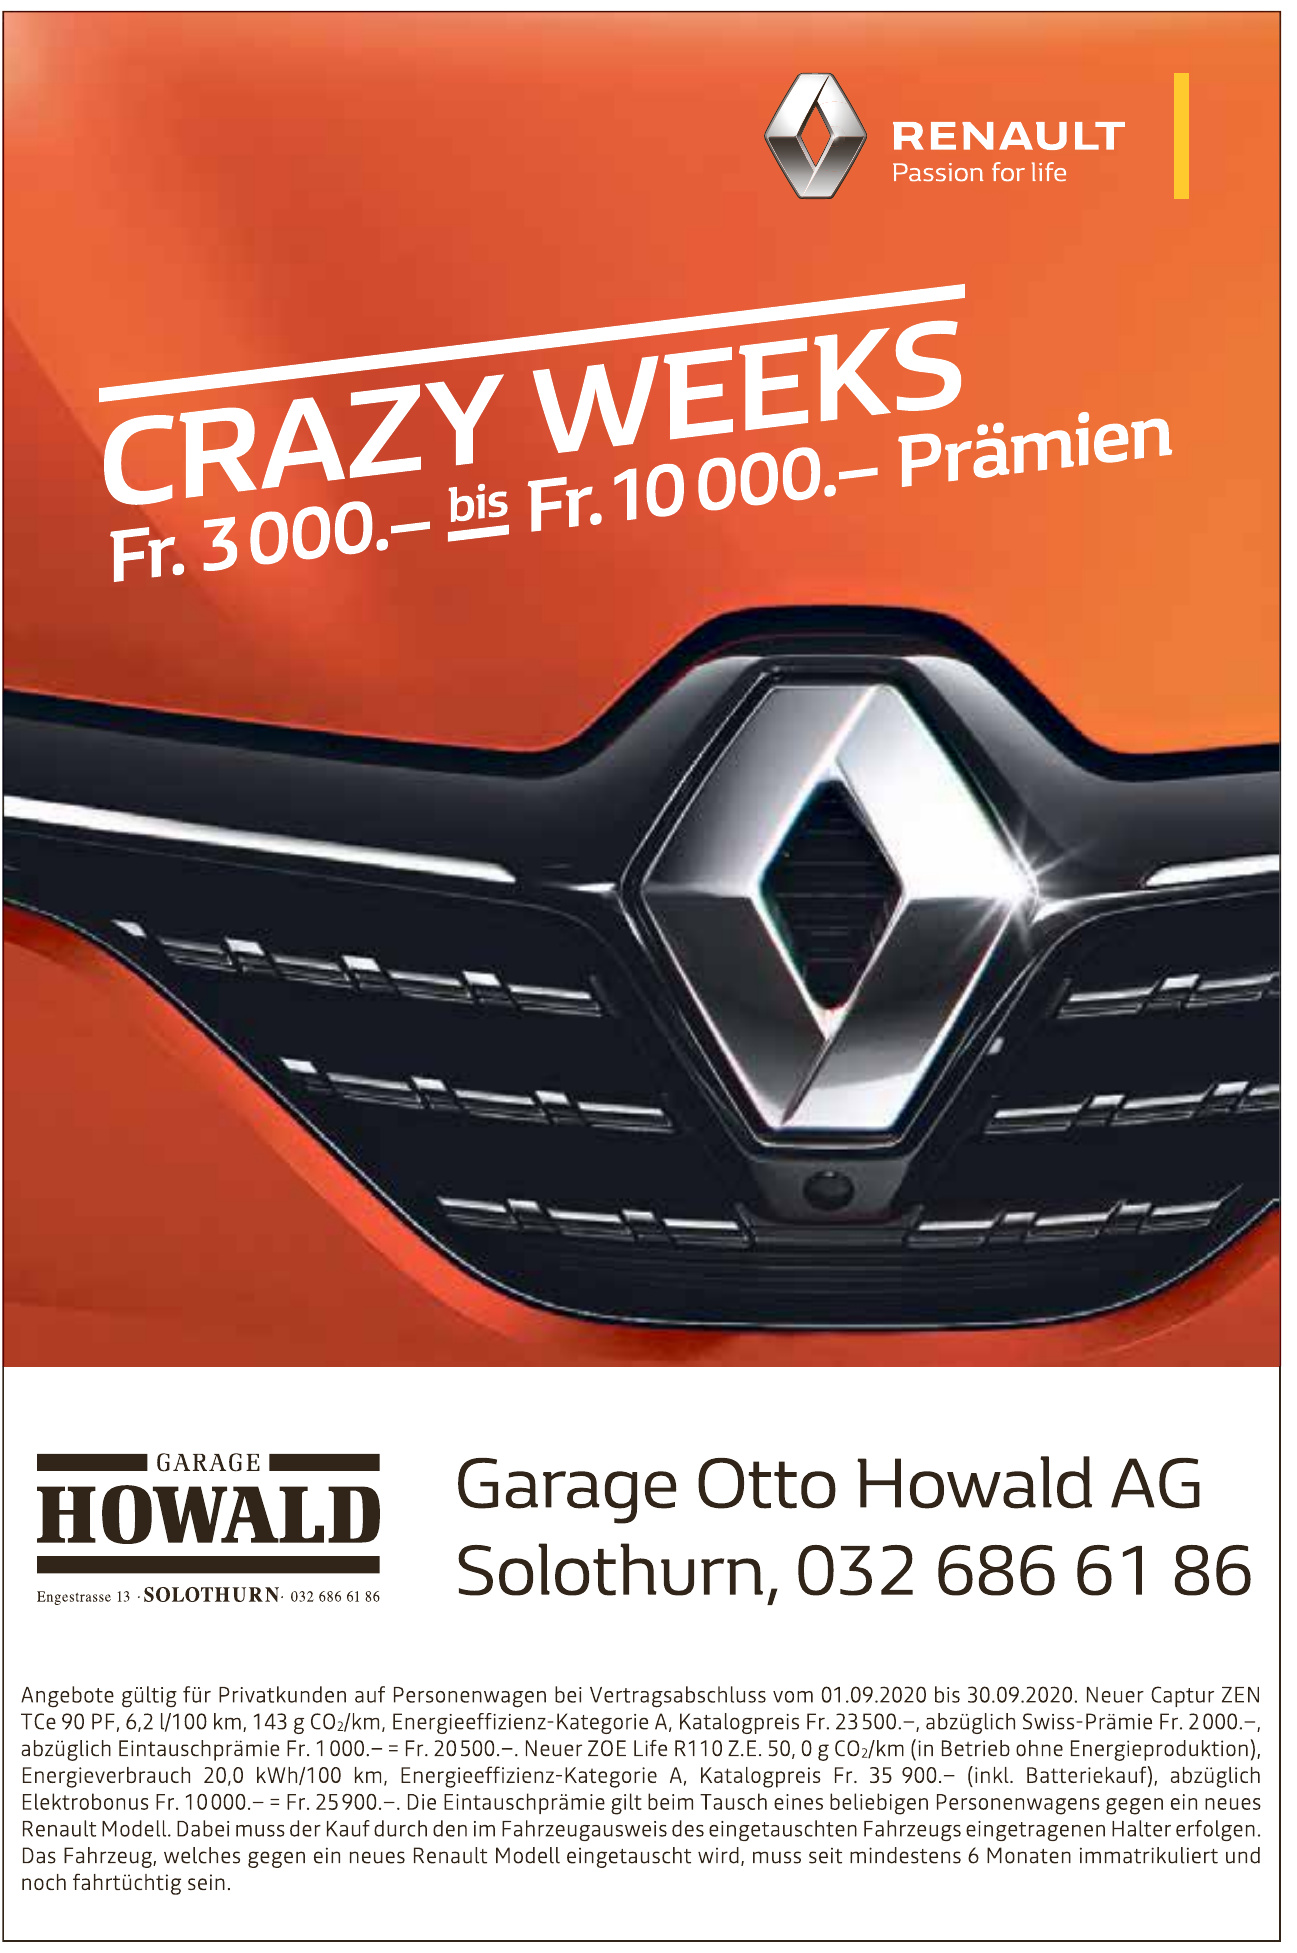 Garage Otto Howald AG